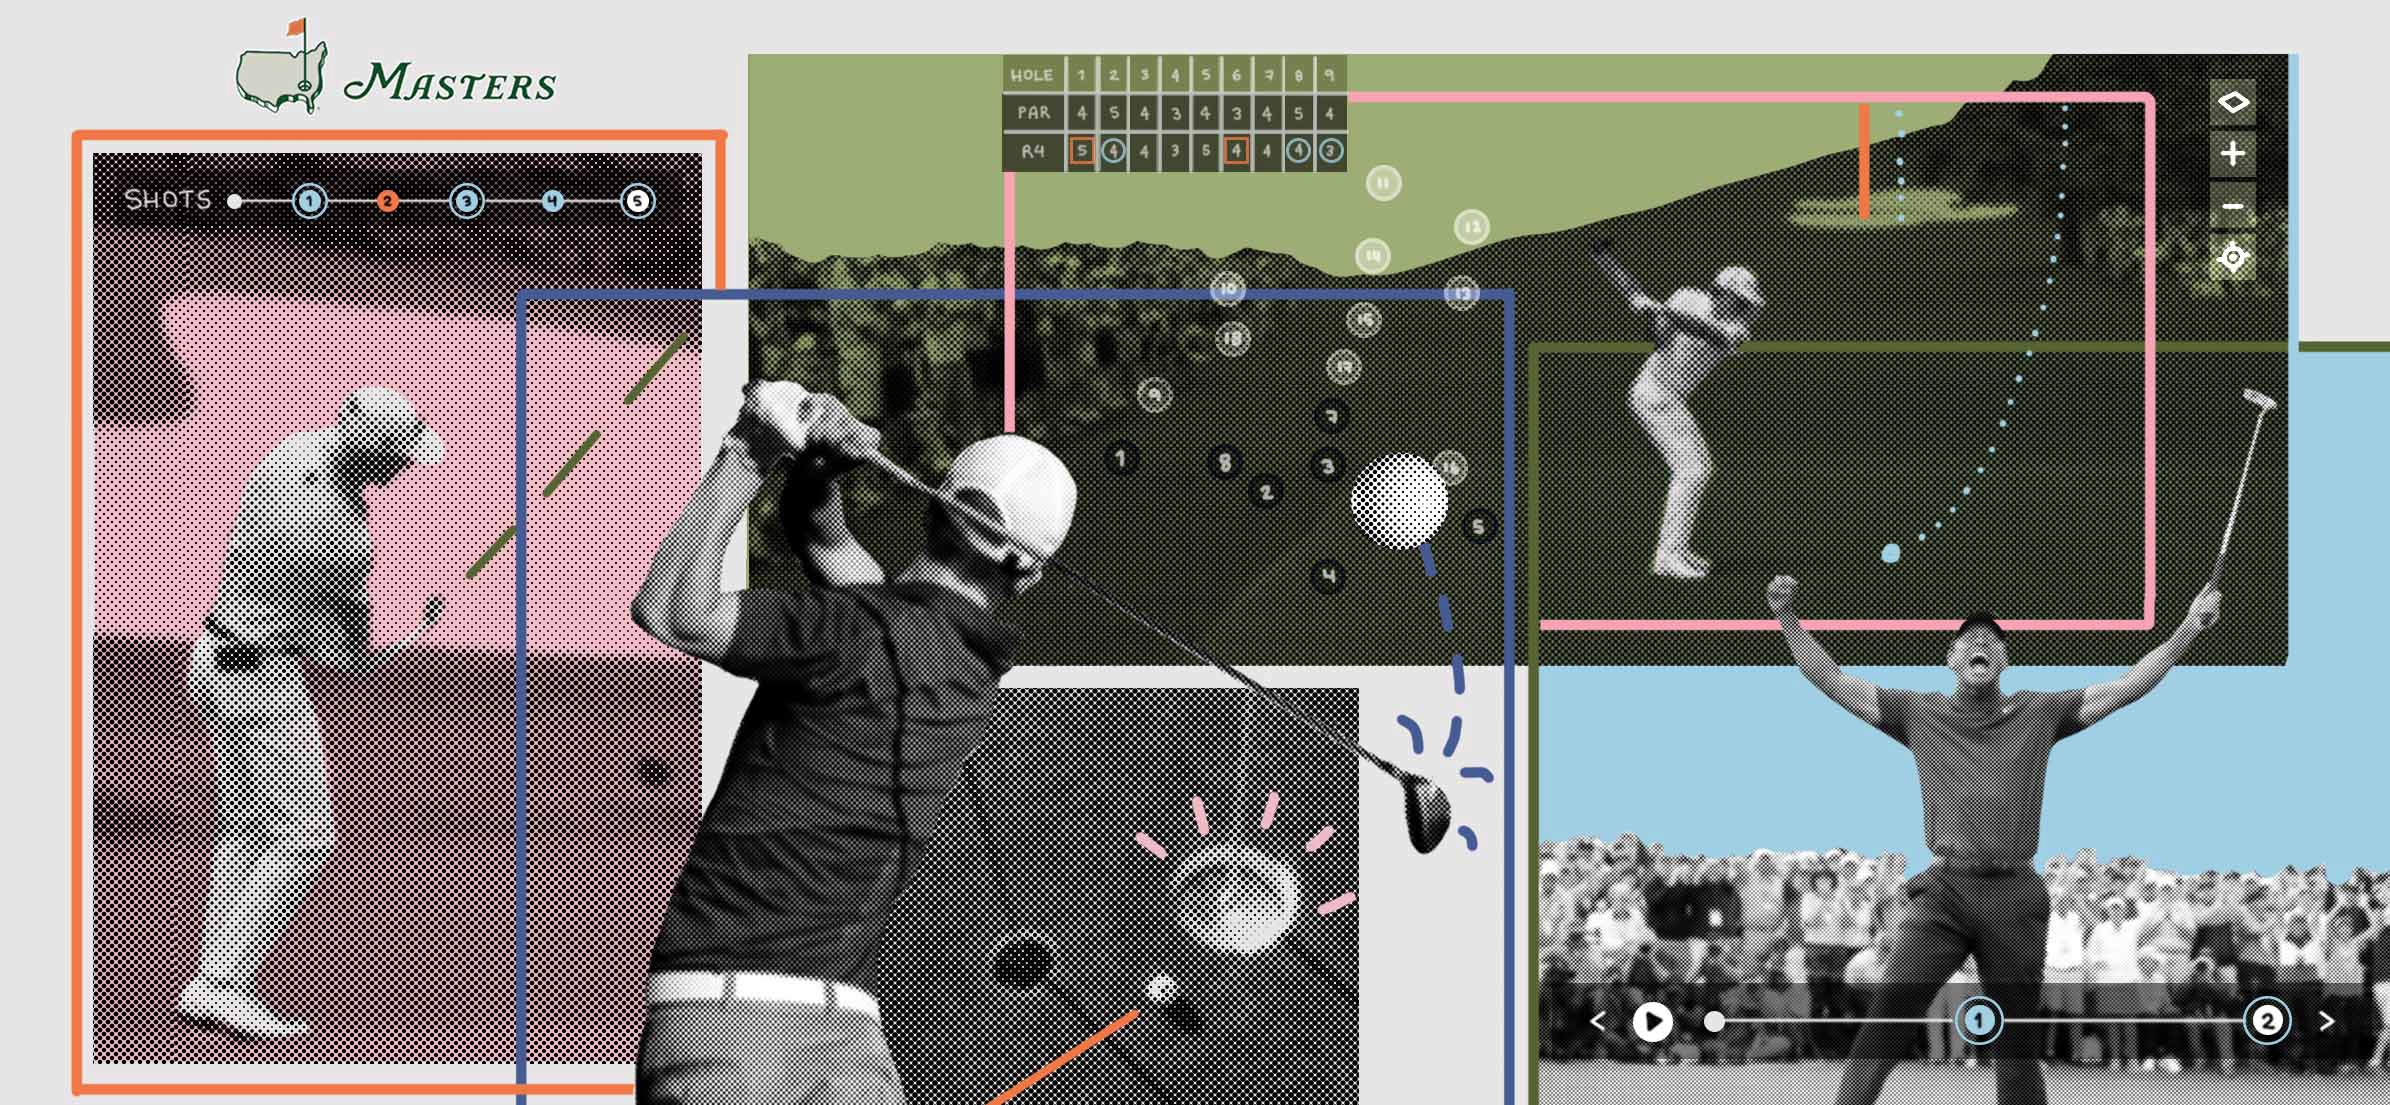 The Masters Digital Experience is a Model for Professional Sports